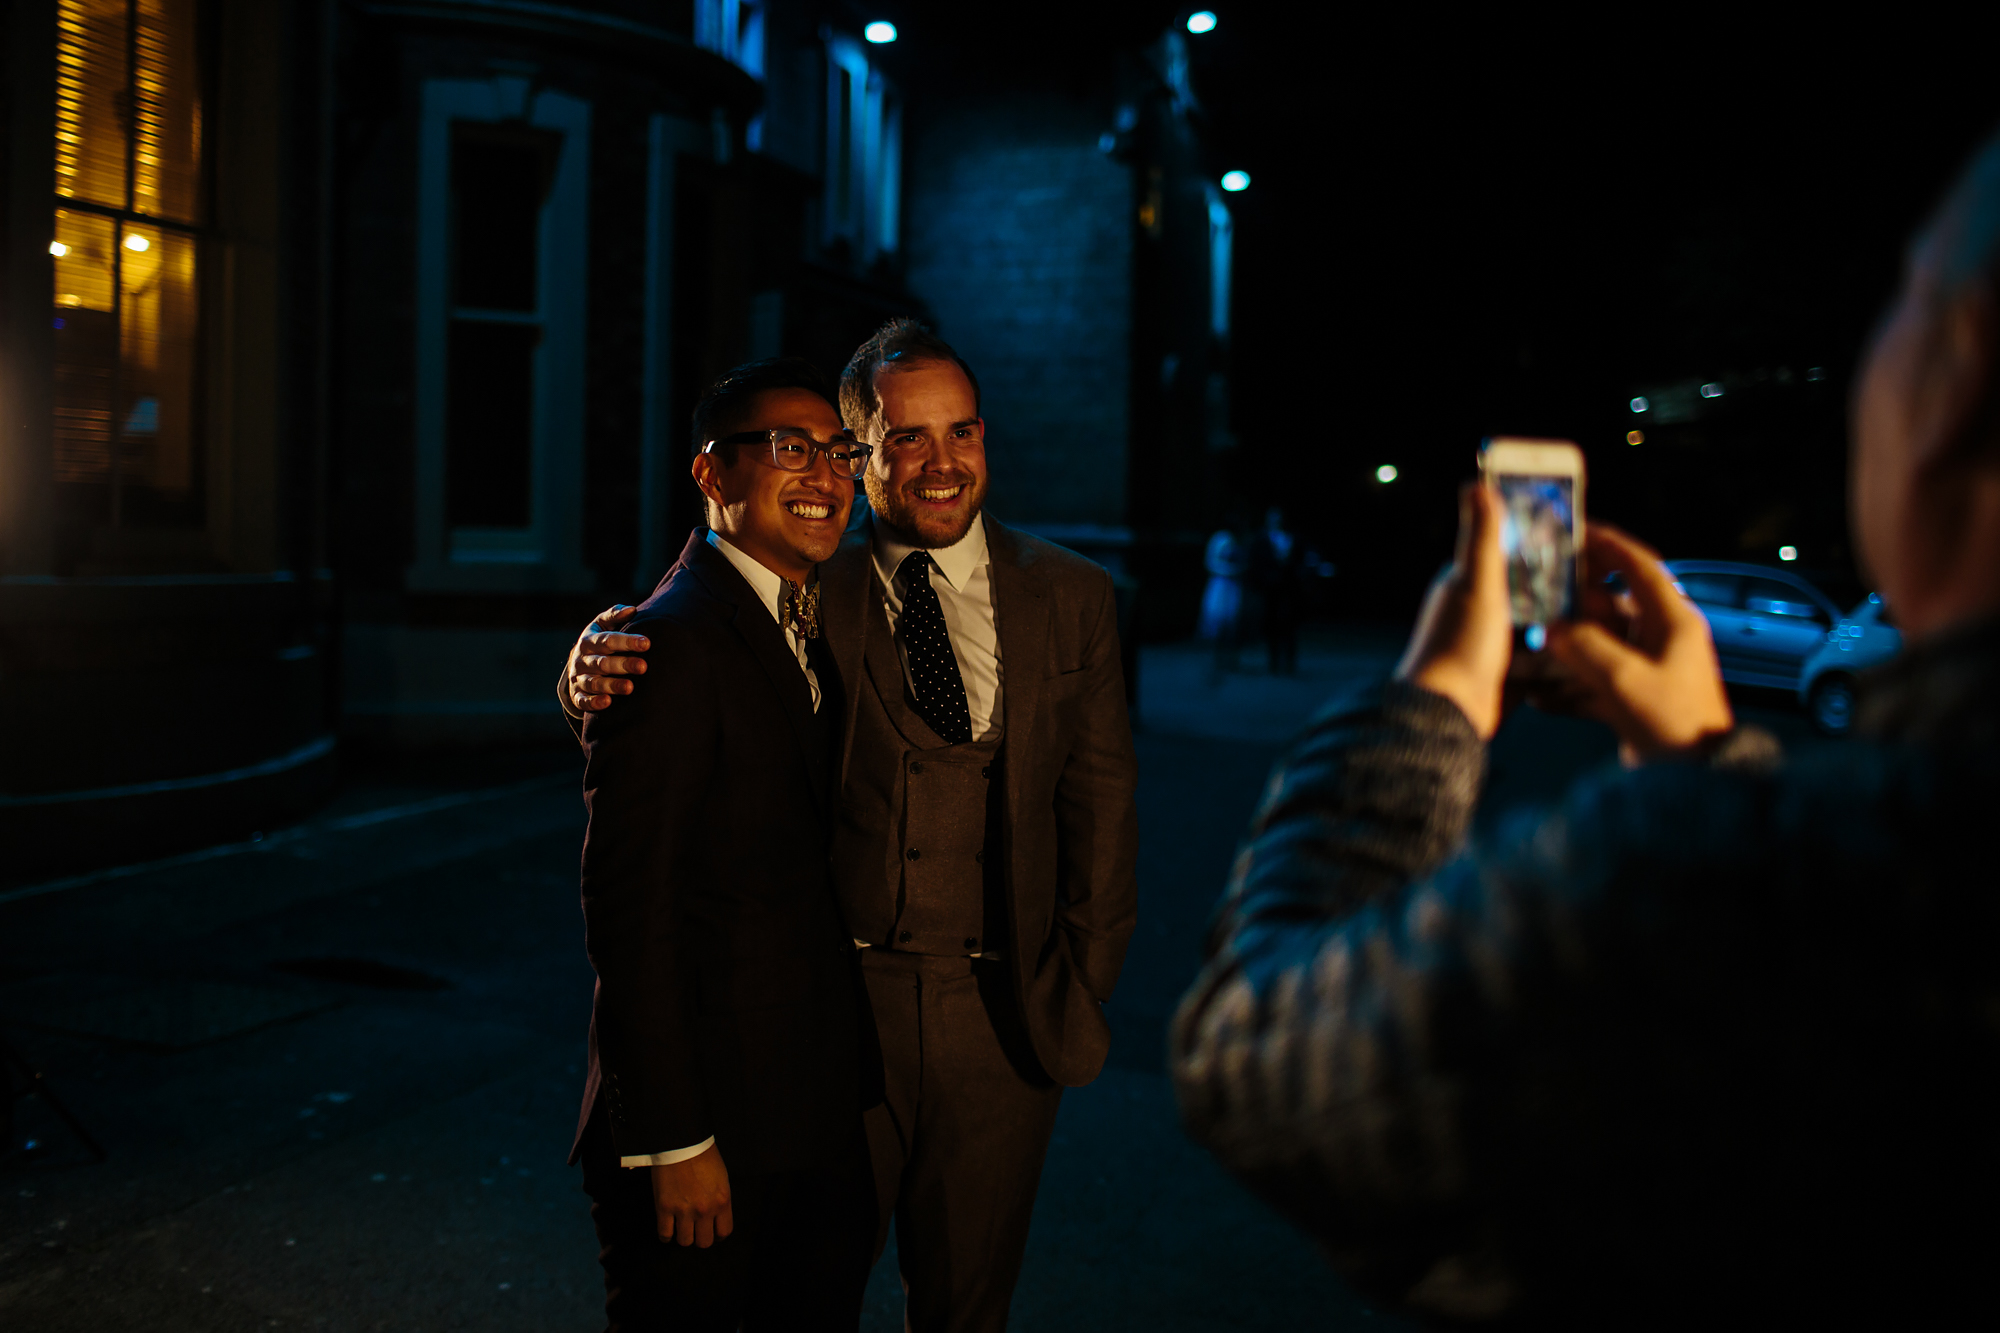 Grooms pose for a photo at a gay wedding